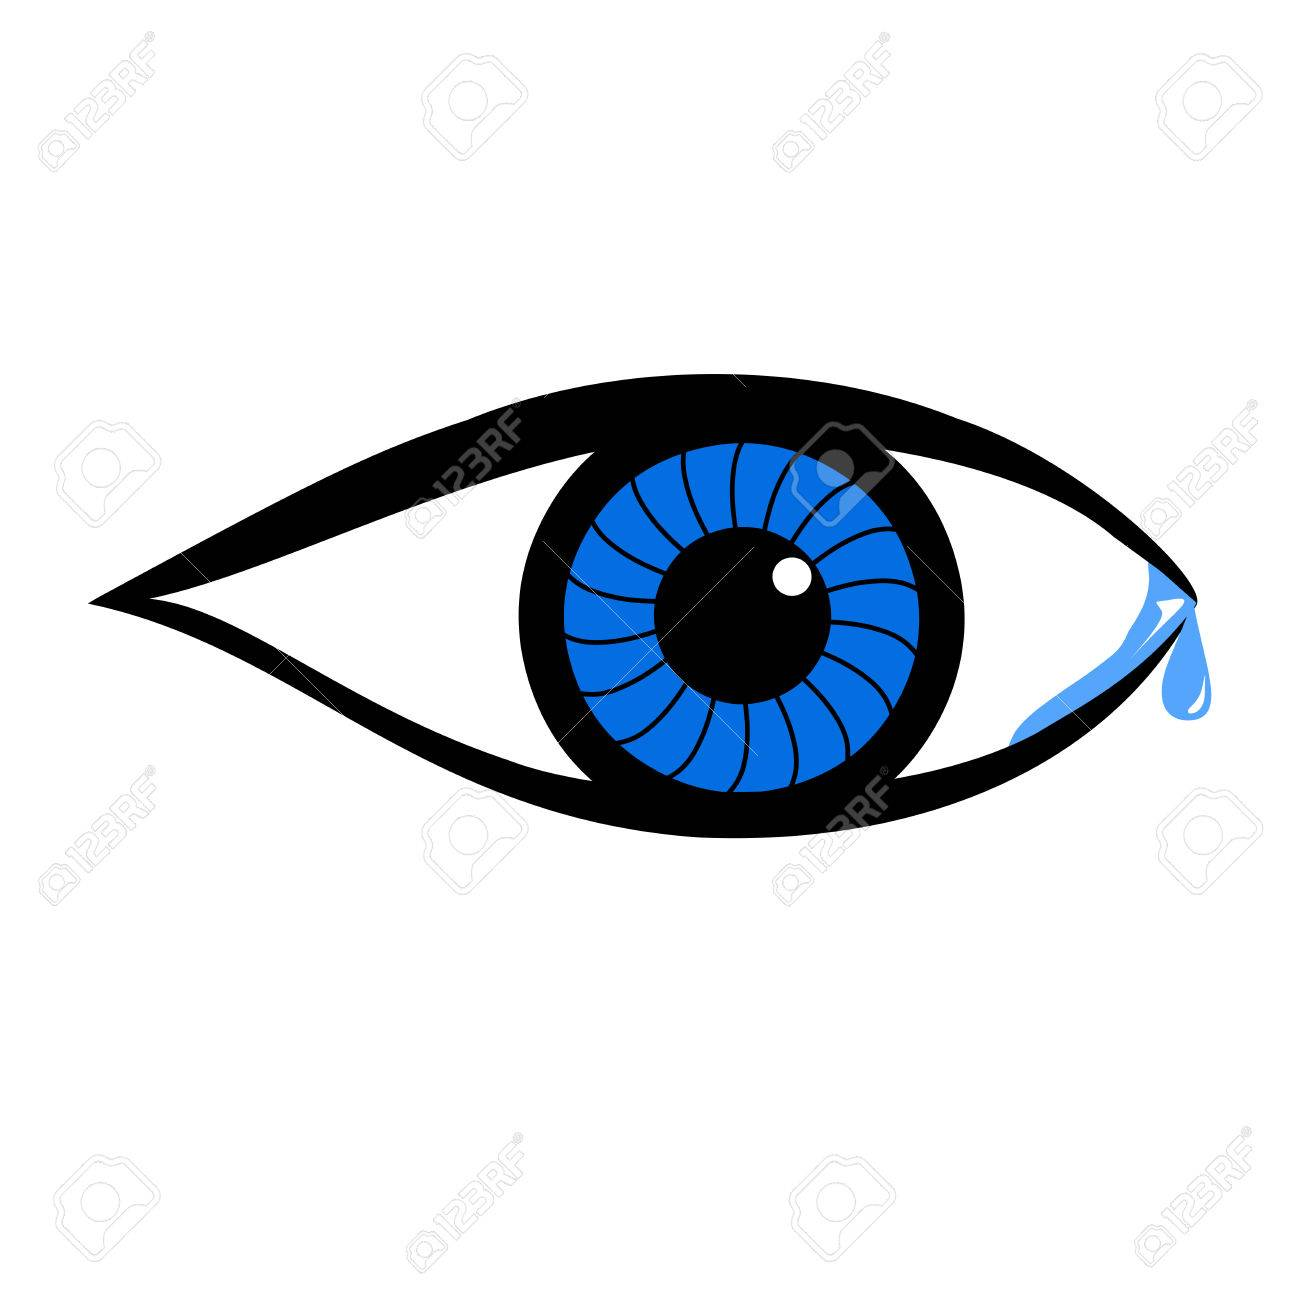 Crying Eye With Tears Royalty Free Cliparts, Vectors, And Stock ...